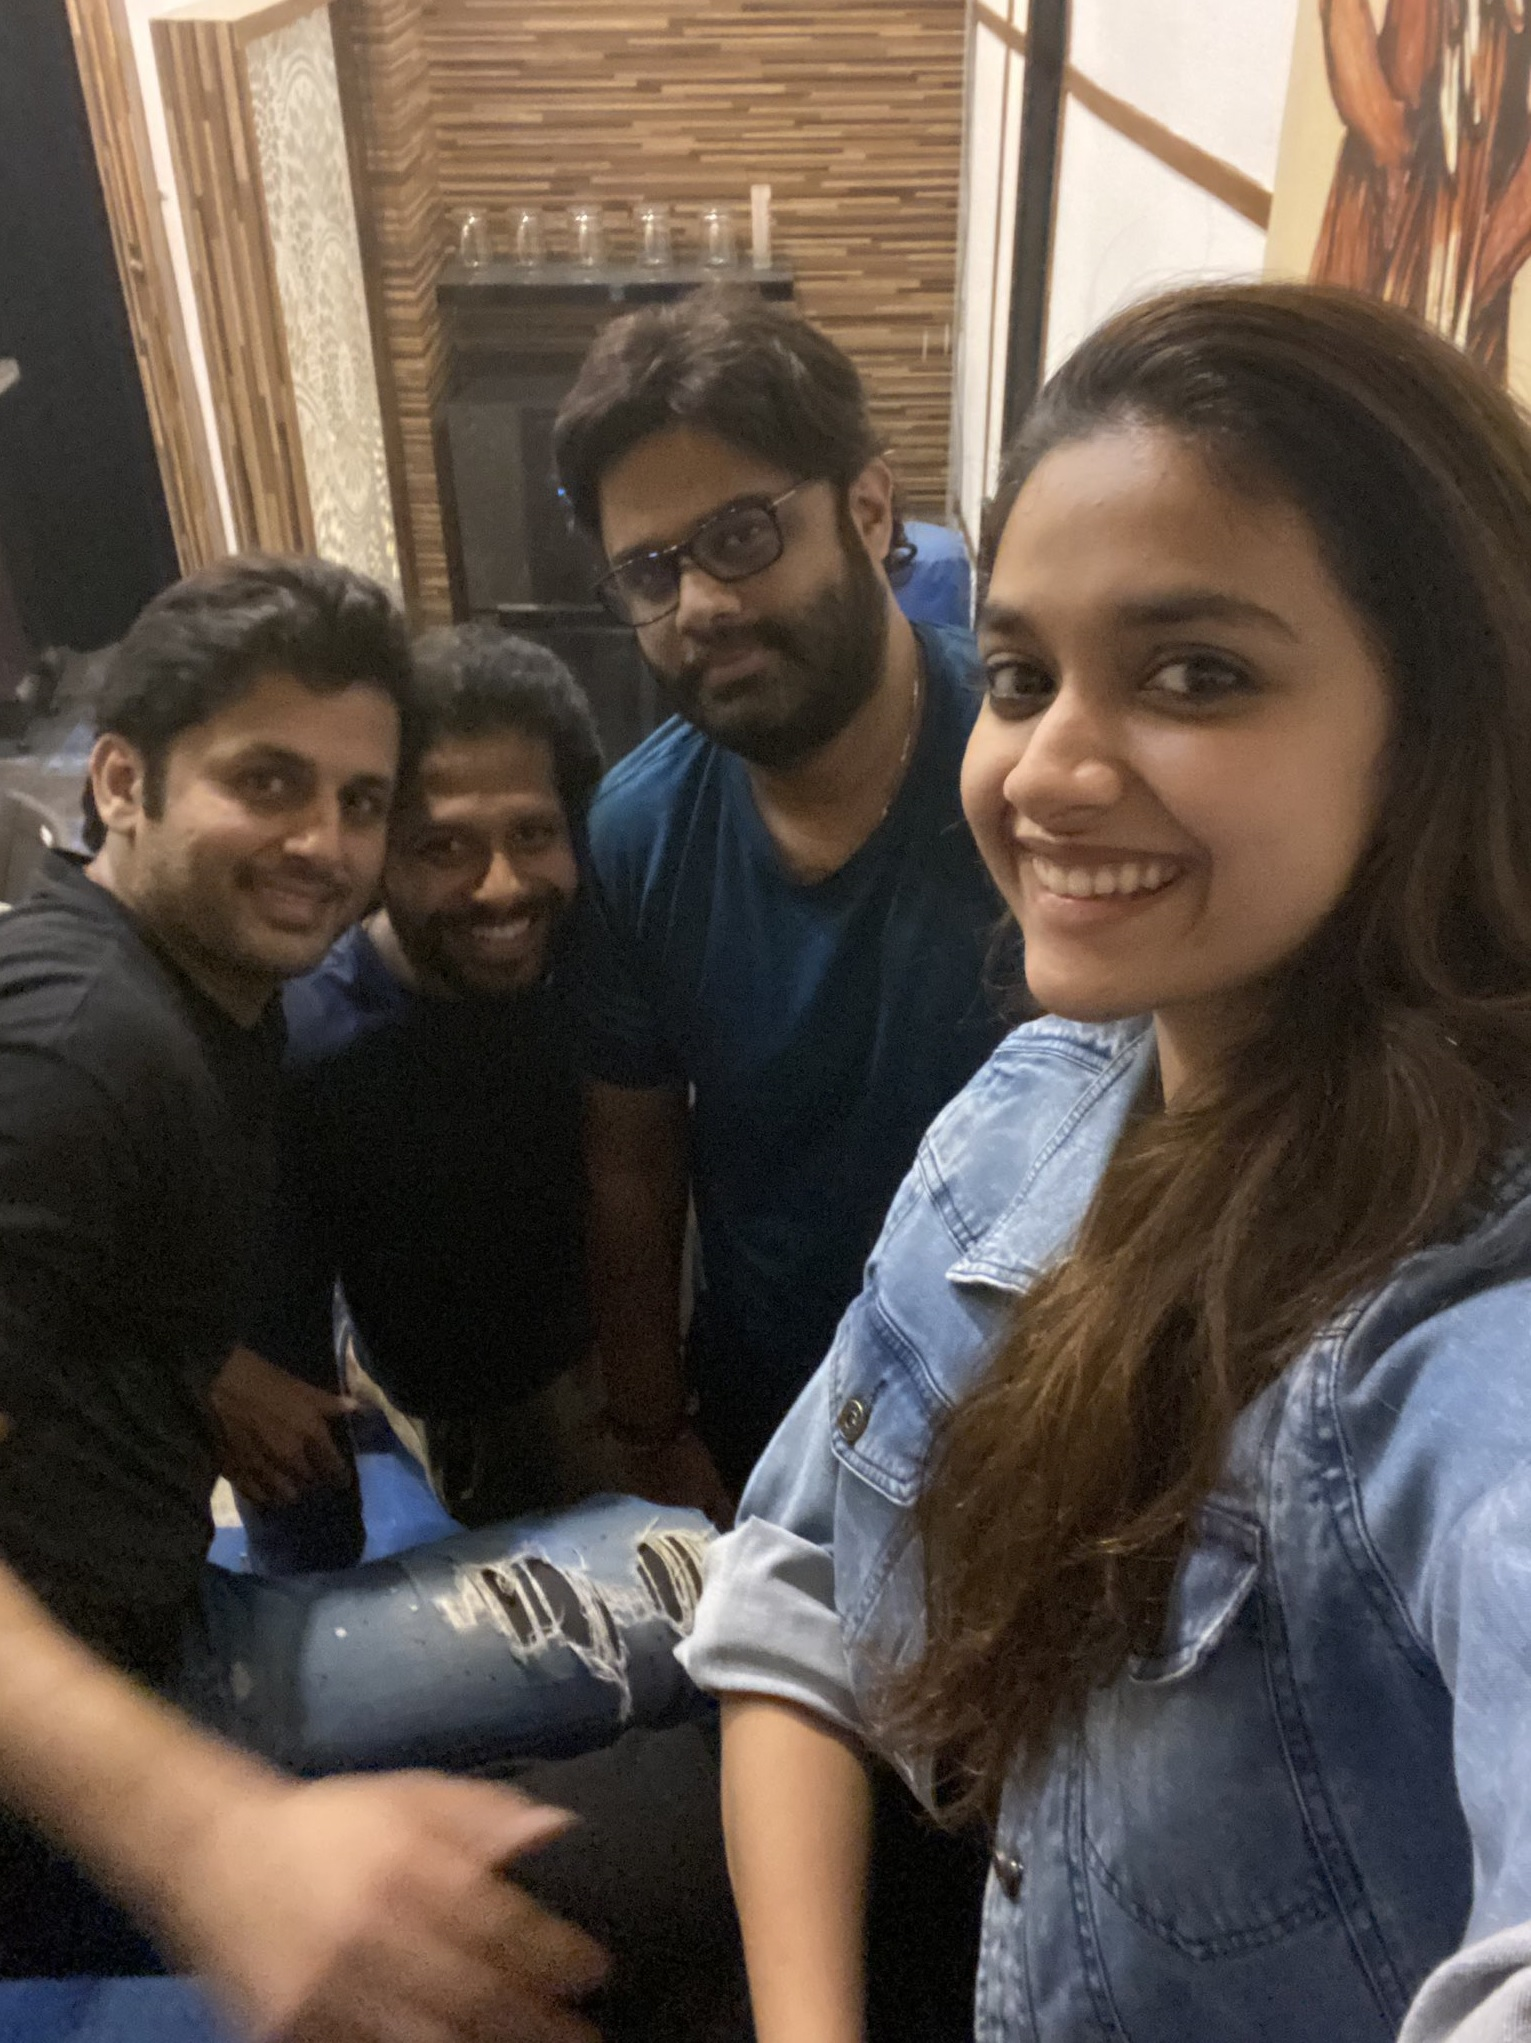 Keerthy Suresh in Blue Awesome Pretty Smile with RangDe Team Selfie